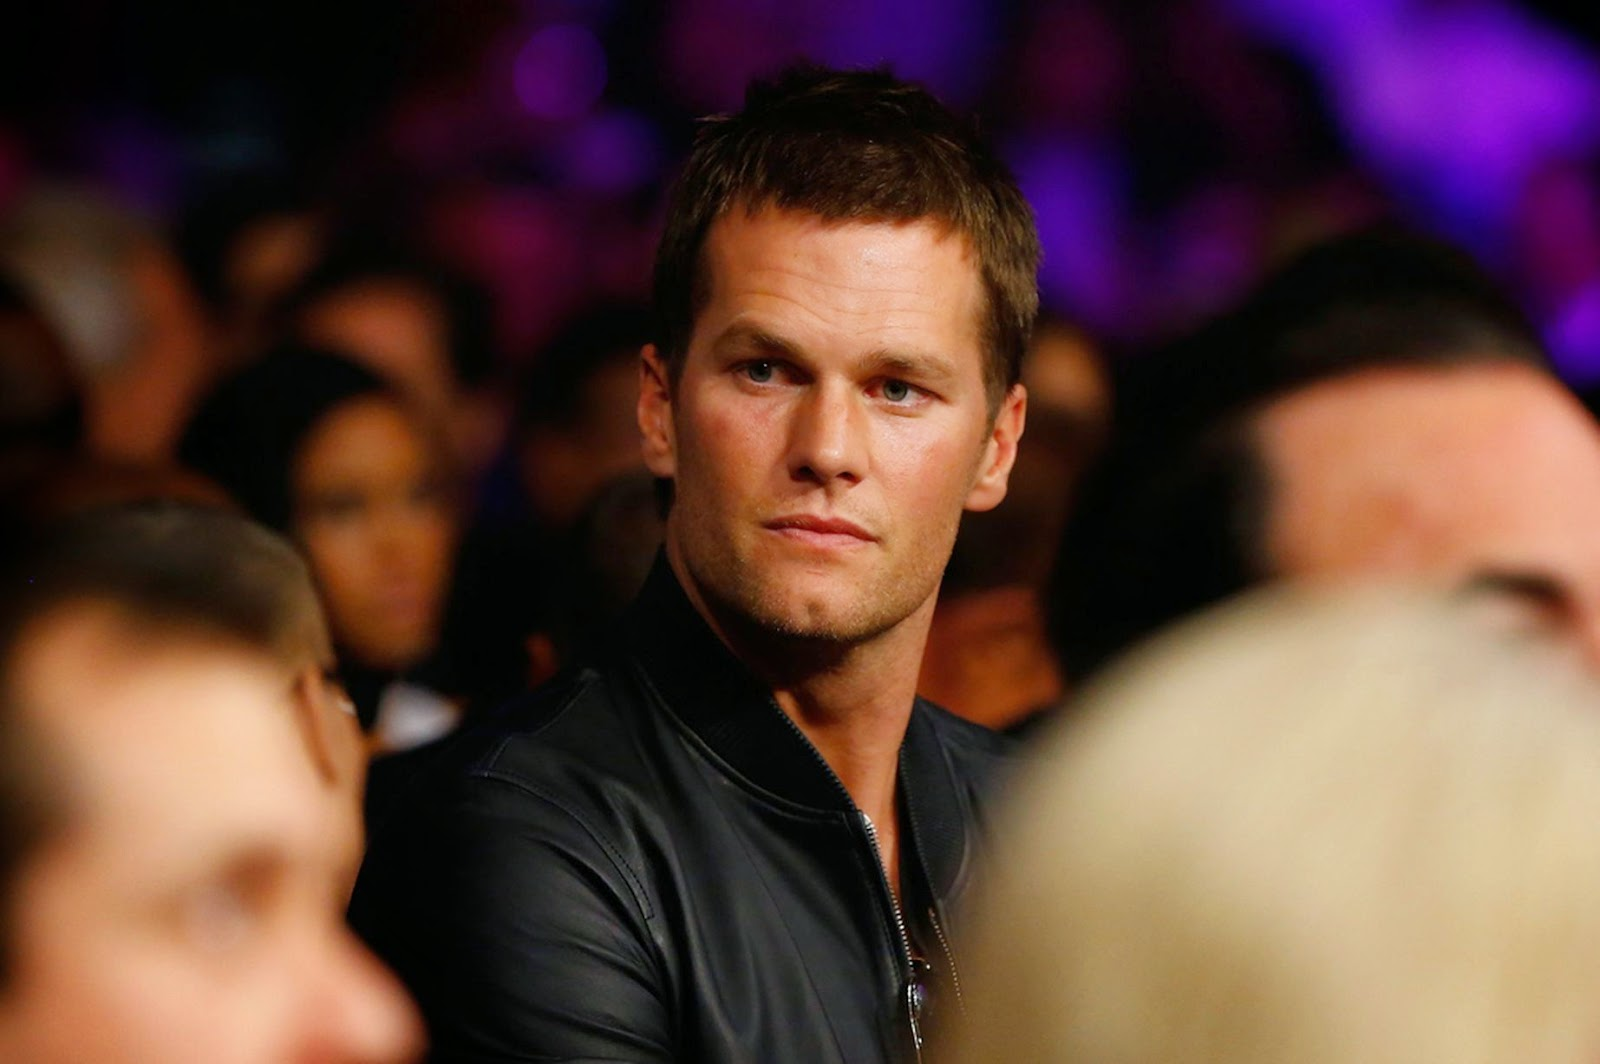 Tom Brady - Mayweather vs Pacquiao Fight in Las Vegas